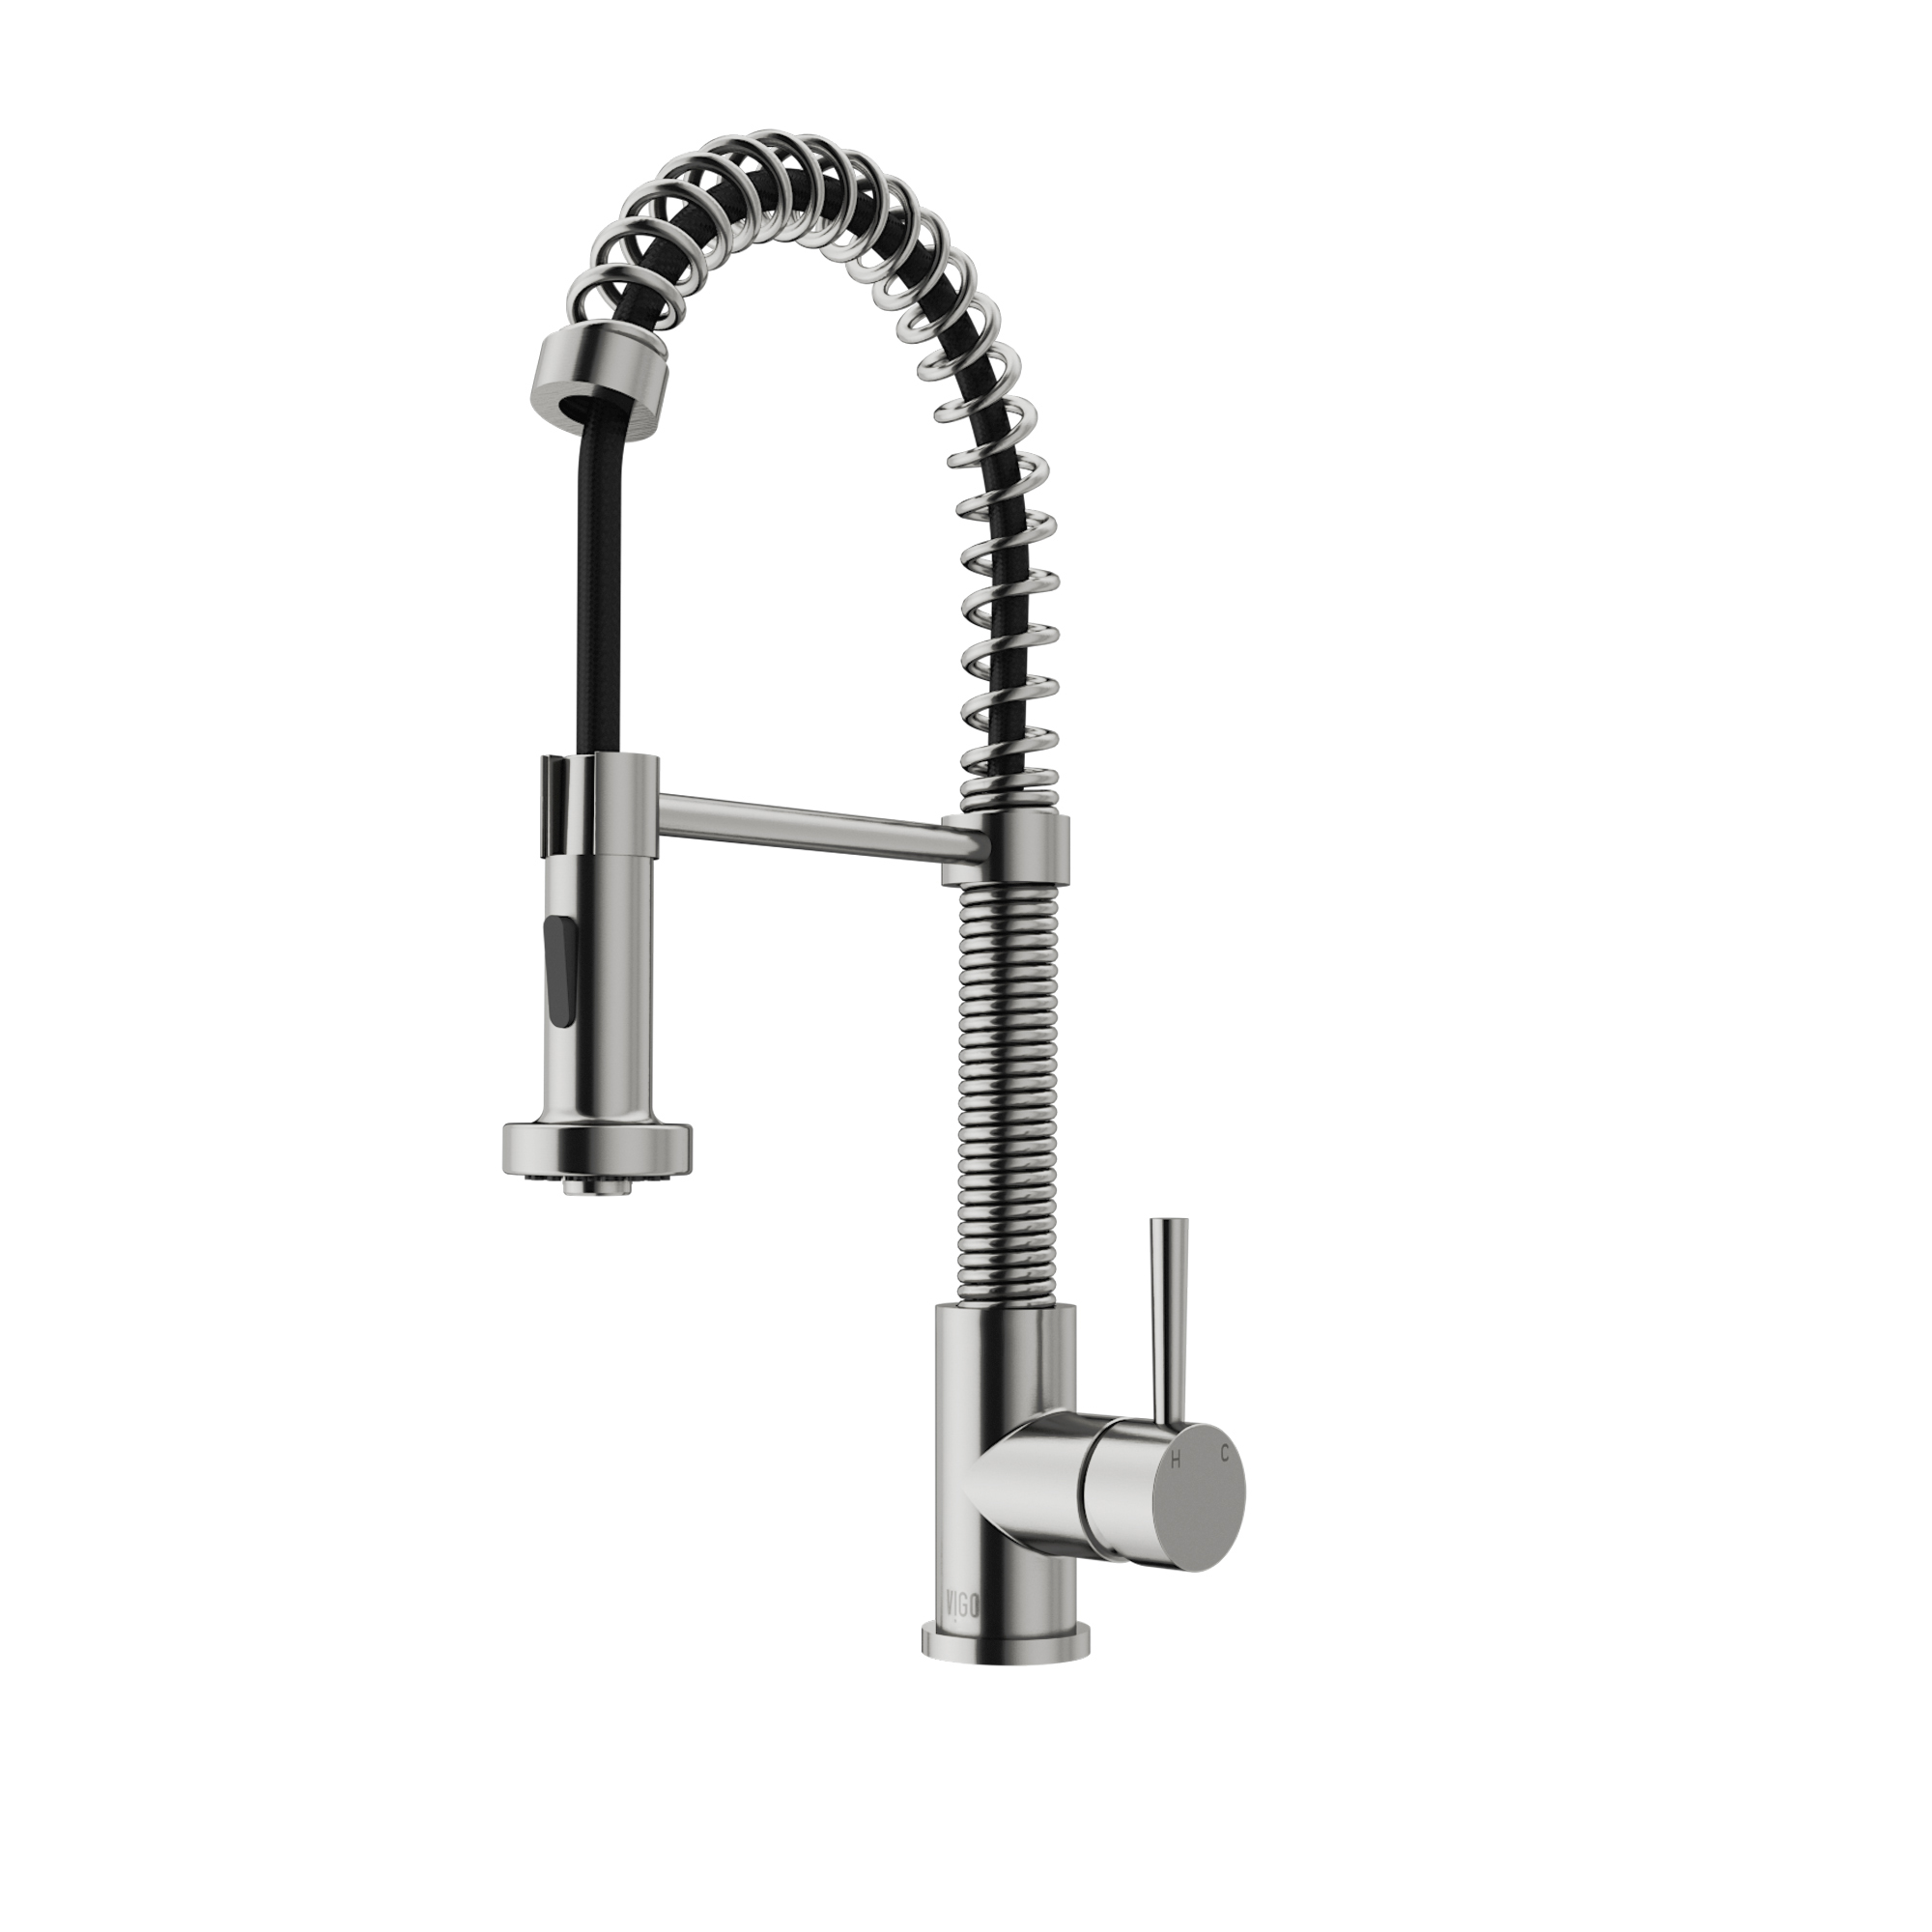 champagne pull bronze down home dst faucet trinsic garden product handle delta single cz kitchen